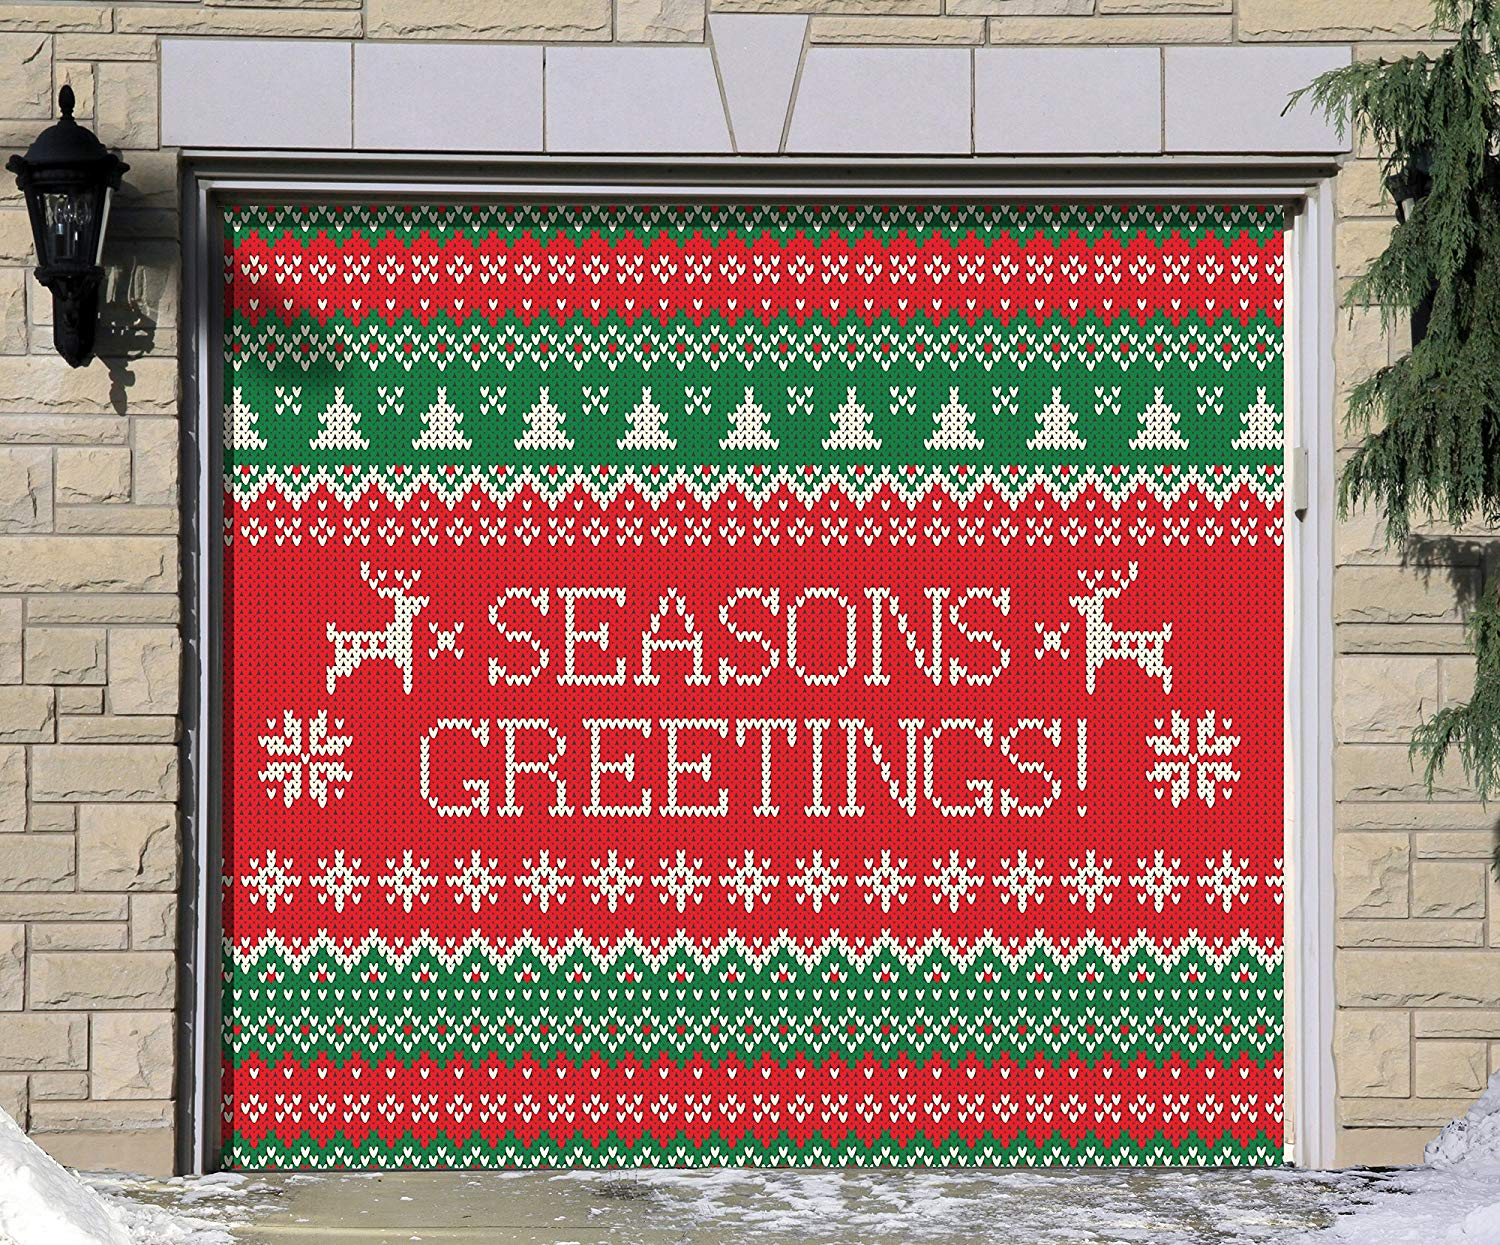 Victory Corps Outdoor Christmas Holiday Garage Door Banner Cover Mural Décoration - Ugly Christmas Sweater Seasons Greetings - Outdoor Christmas Holiday Garage Door Banner Décor Sign 7'x8'